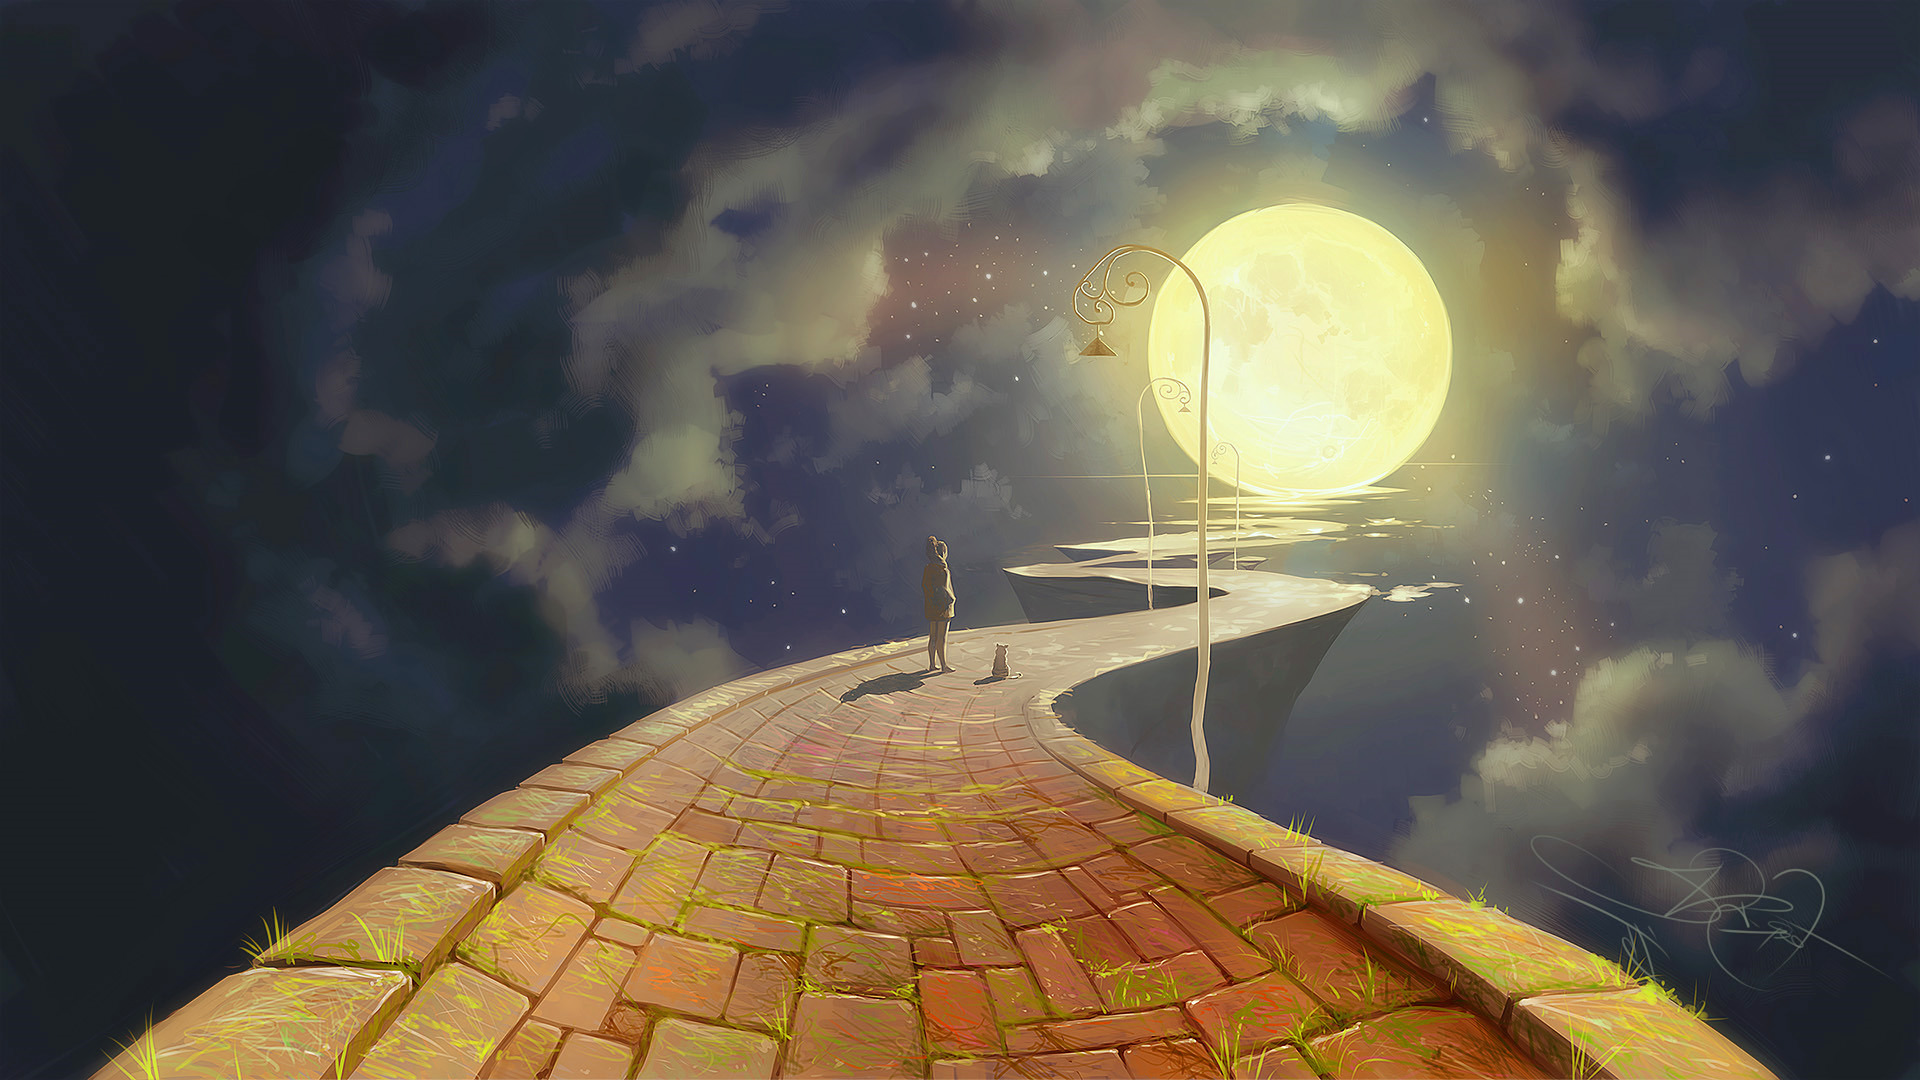 Street Light At Night Painting Moon Artwork Fantasy Art Path Cobblestone Street